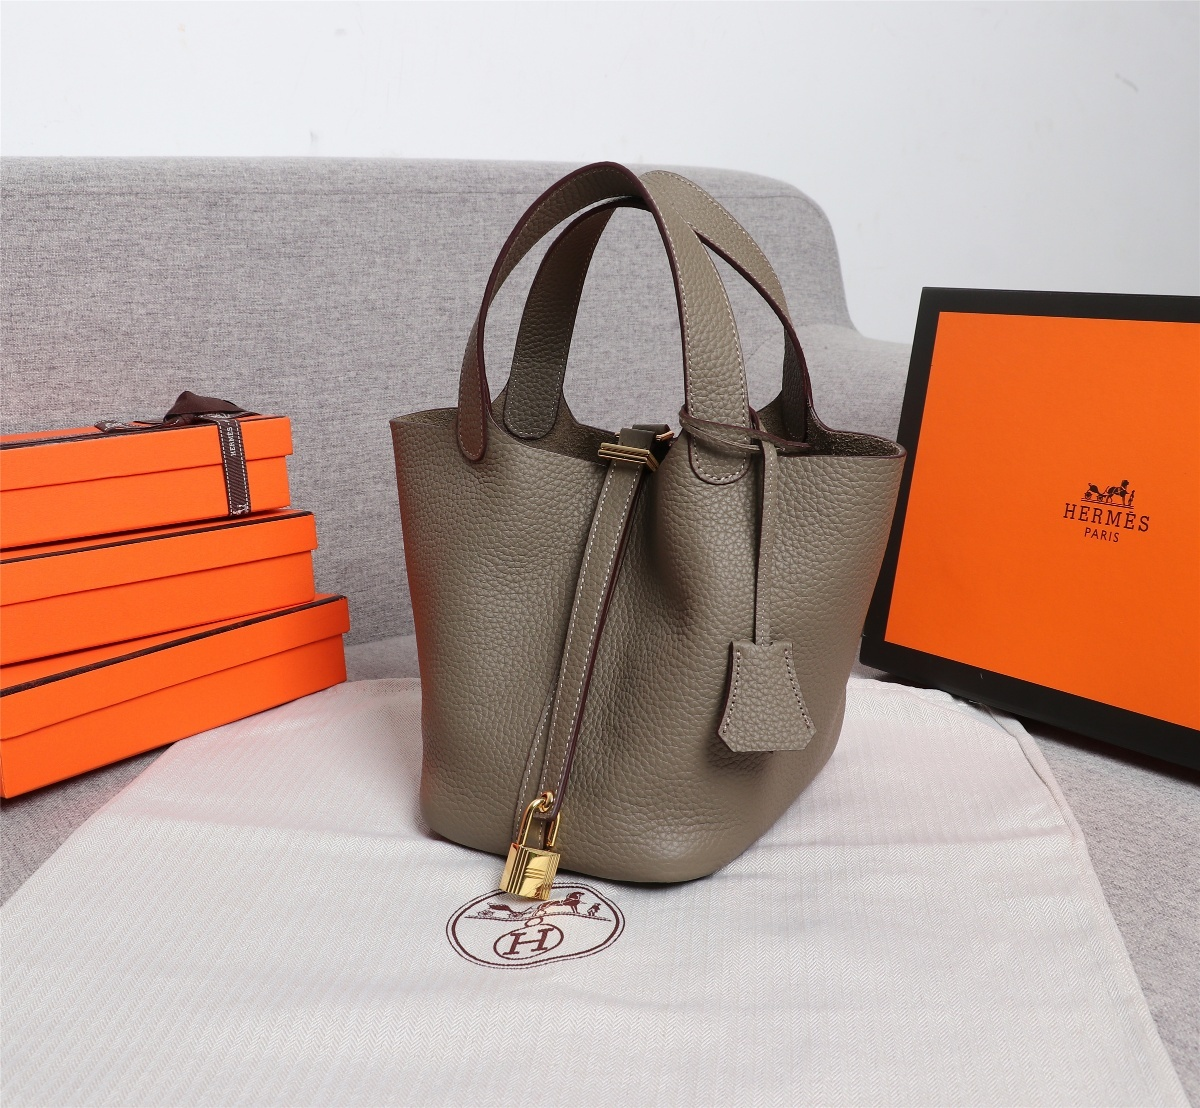 Replica Hermes Picotin Lock Bag 18cm and 22cm Elephant Grey with Gold Hardware